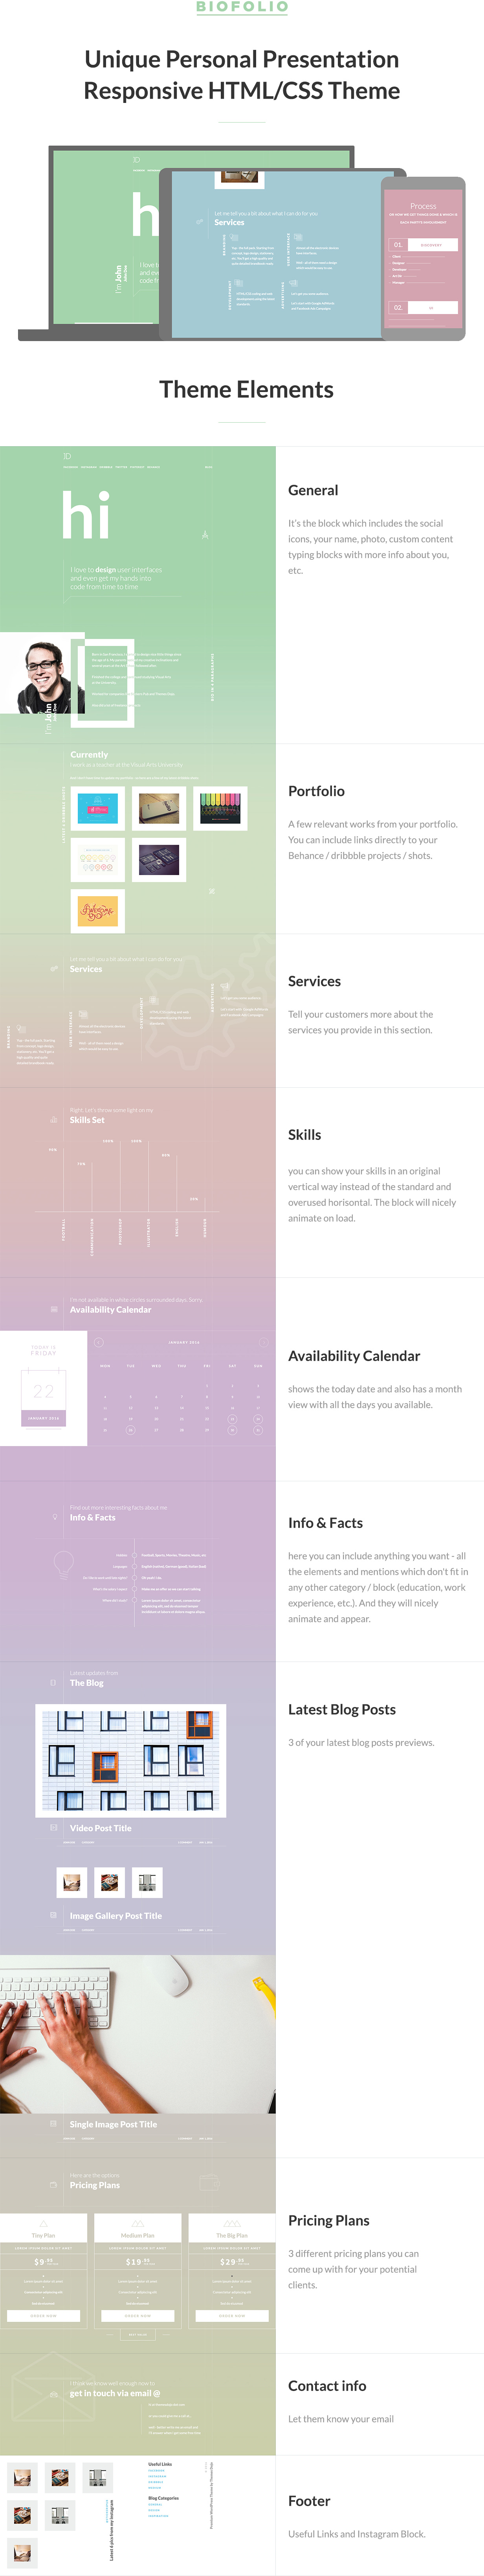 Biofolio resume portfolio htmlcss template by themes dojo all these bundled in a beautifully crafted htmlcss theme with nice typography and effects on a changing pastel colored gradient background saigontimesfo